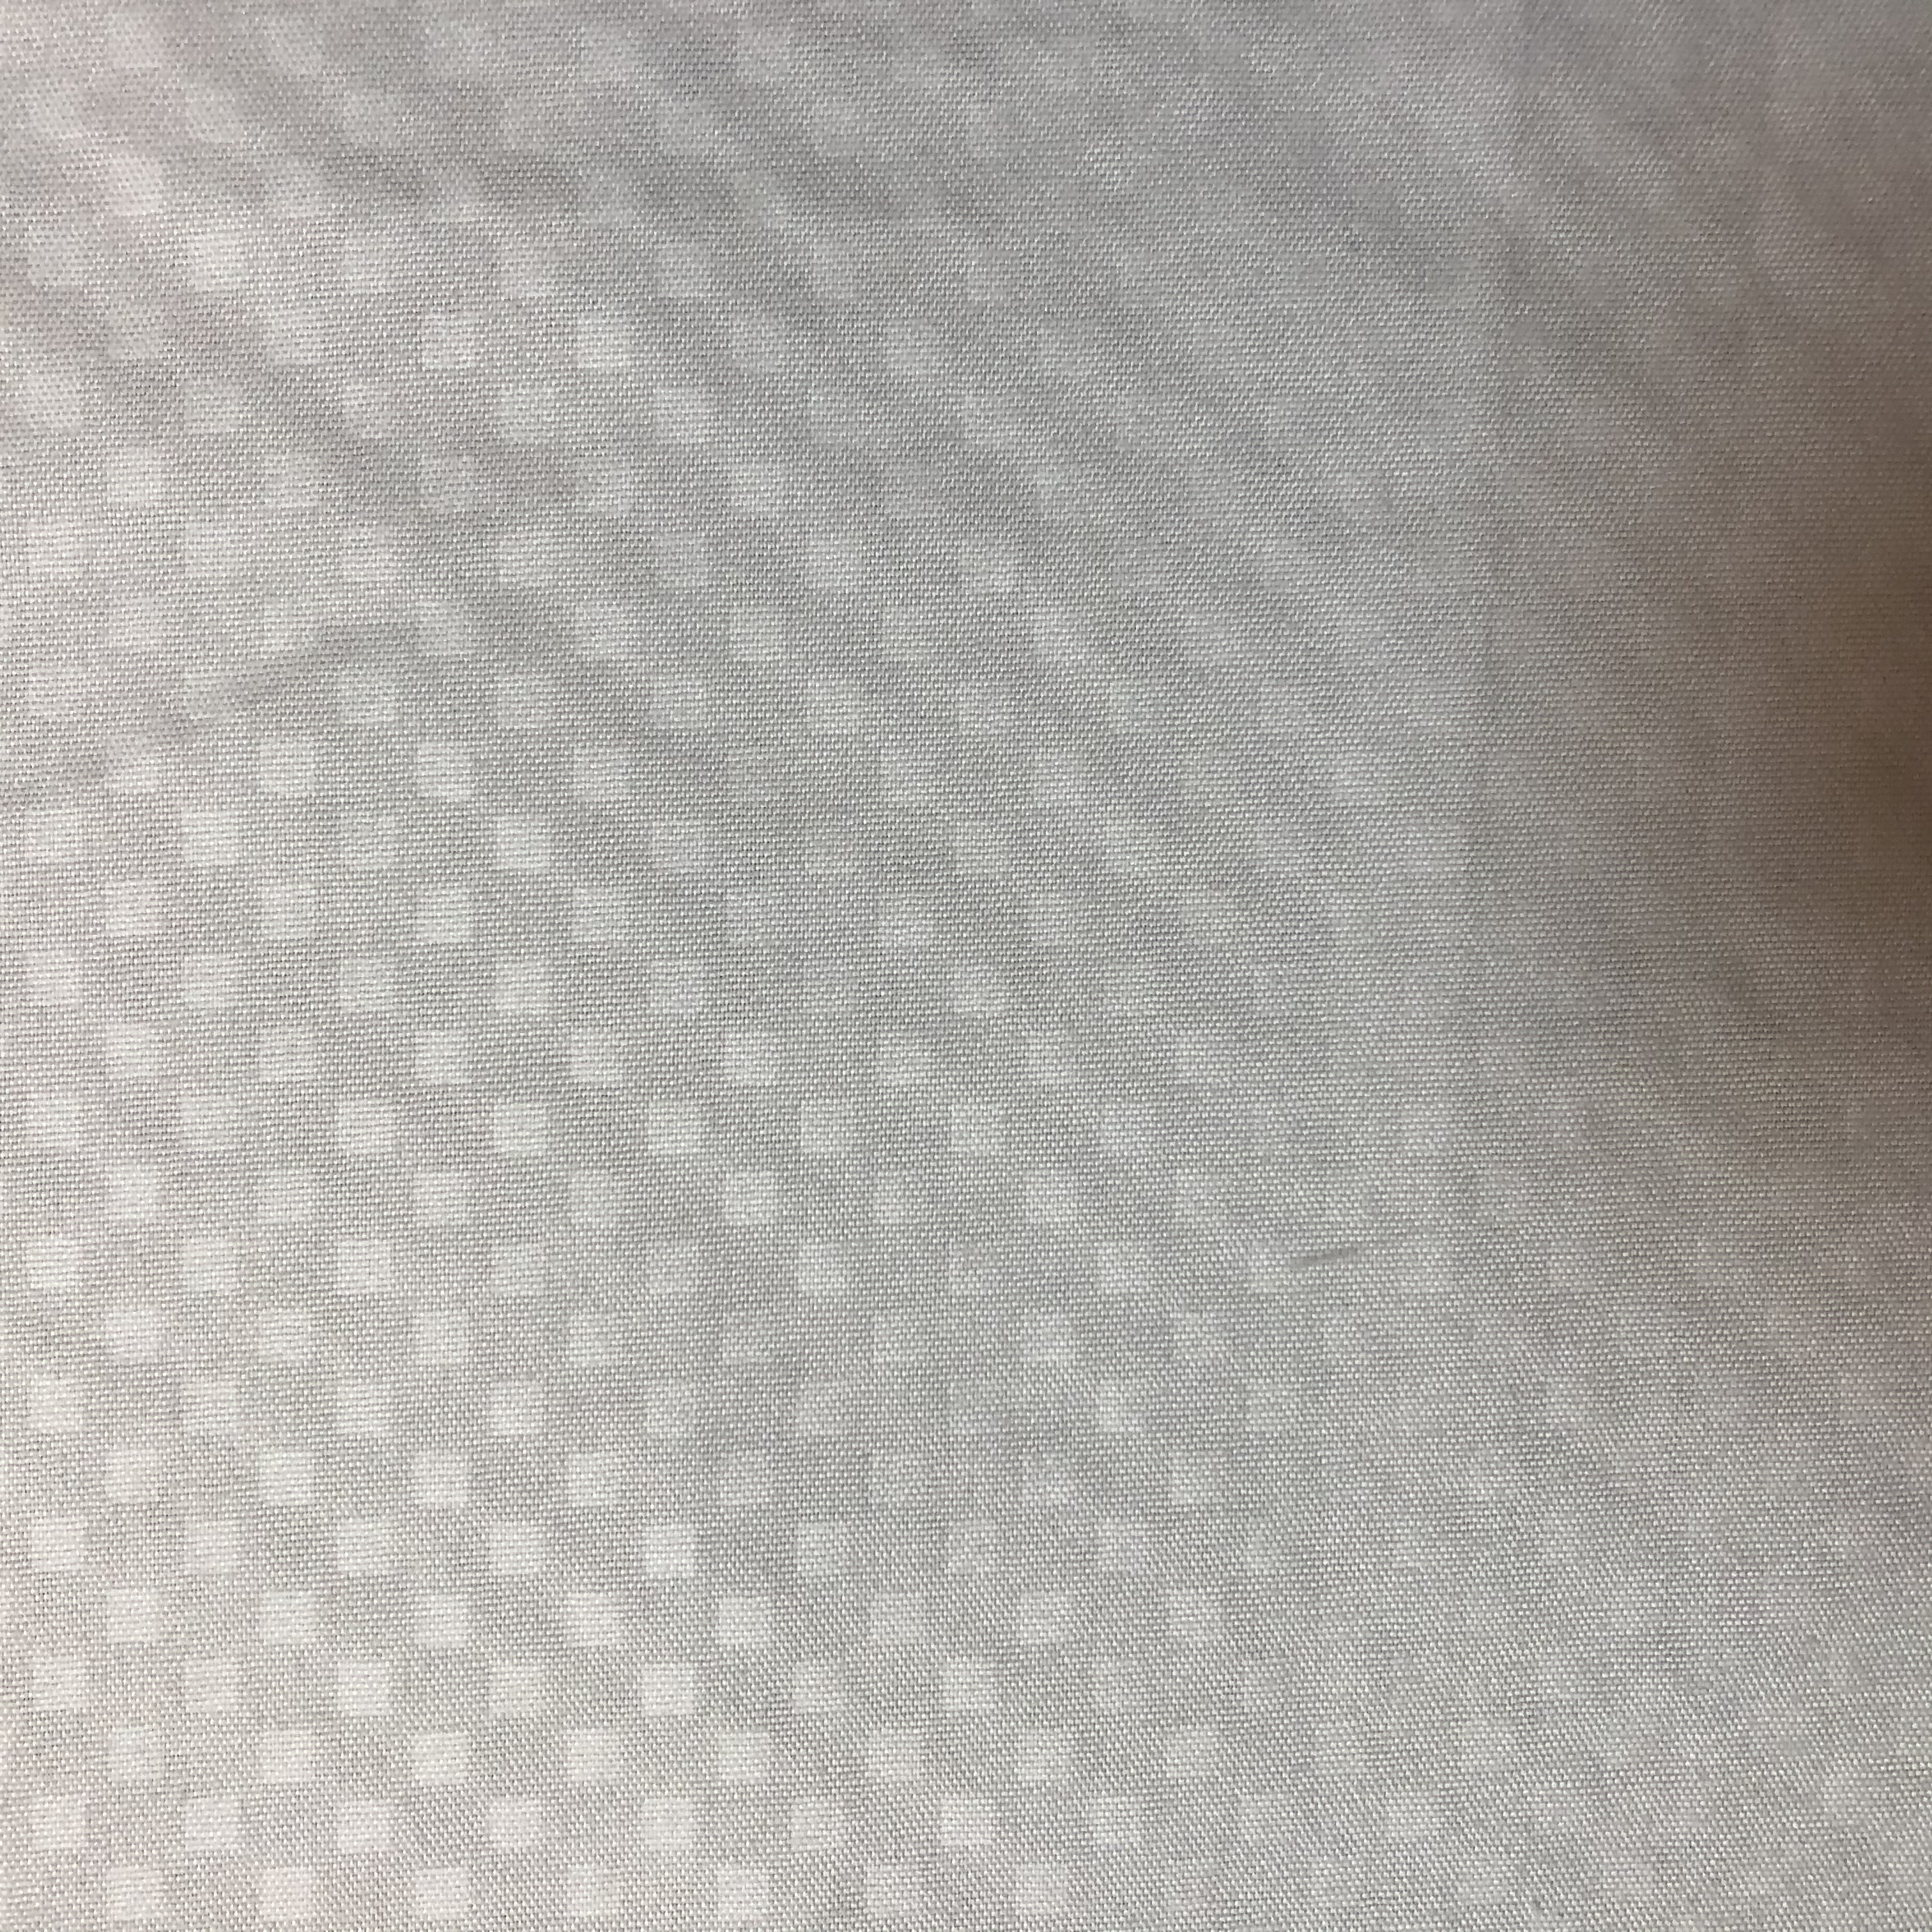 100% polyester microfiber plain dyed color embossed hotel fabric